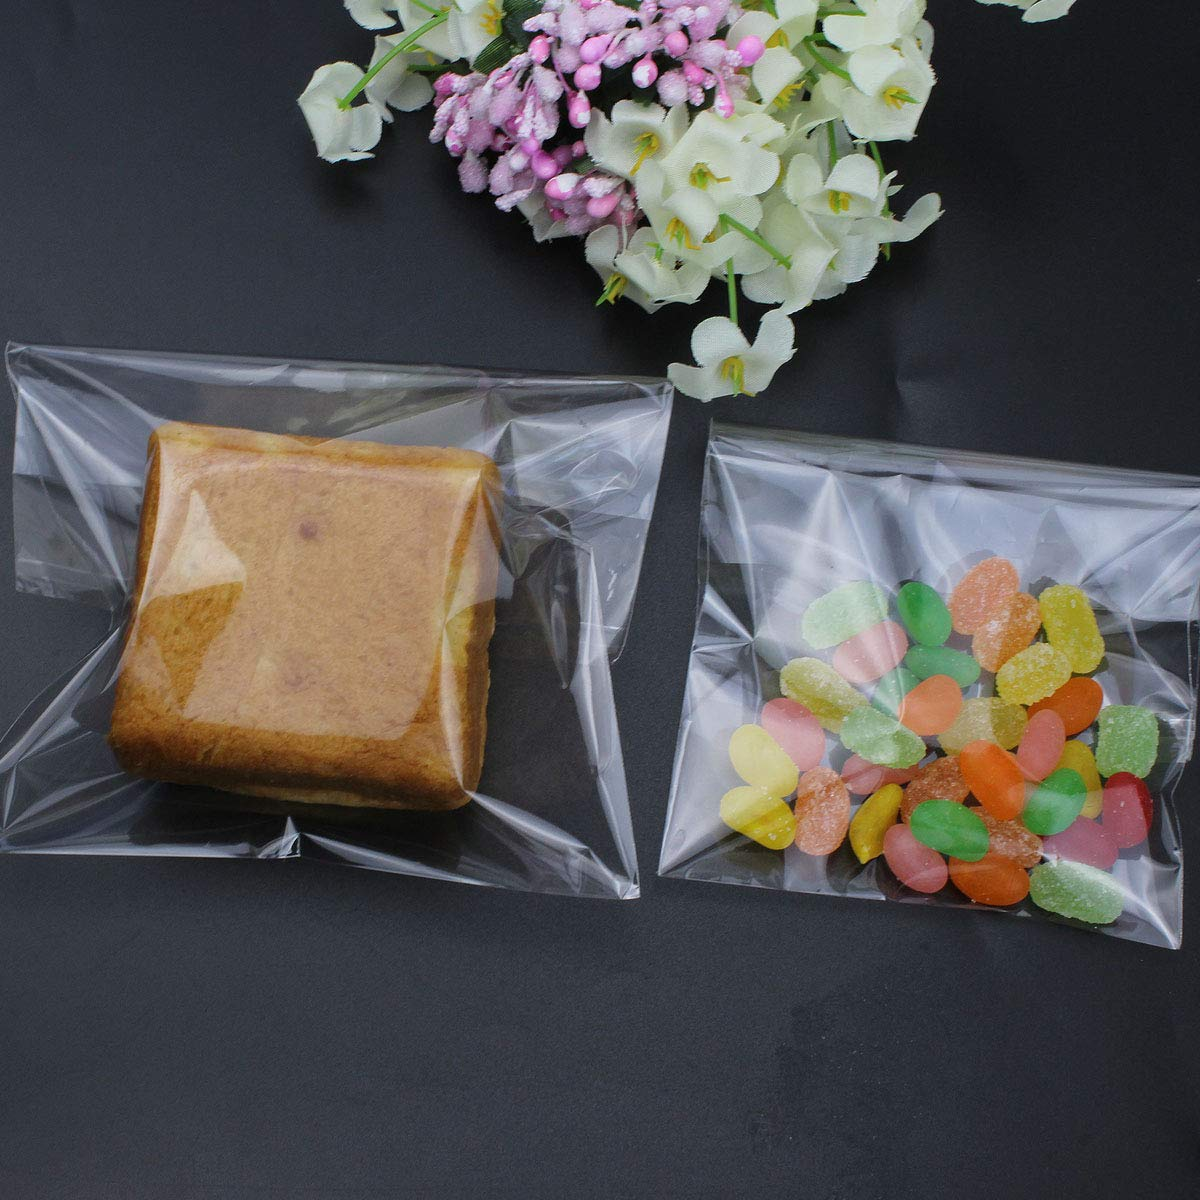 Bread Cookie 4 x 6inch and 5 x 7inch SelfTek 300Pcs Resealable Cello Bags 2 Sizes Clear Bakery Bags for Candy Chocolate